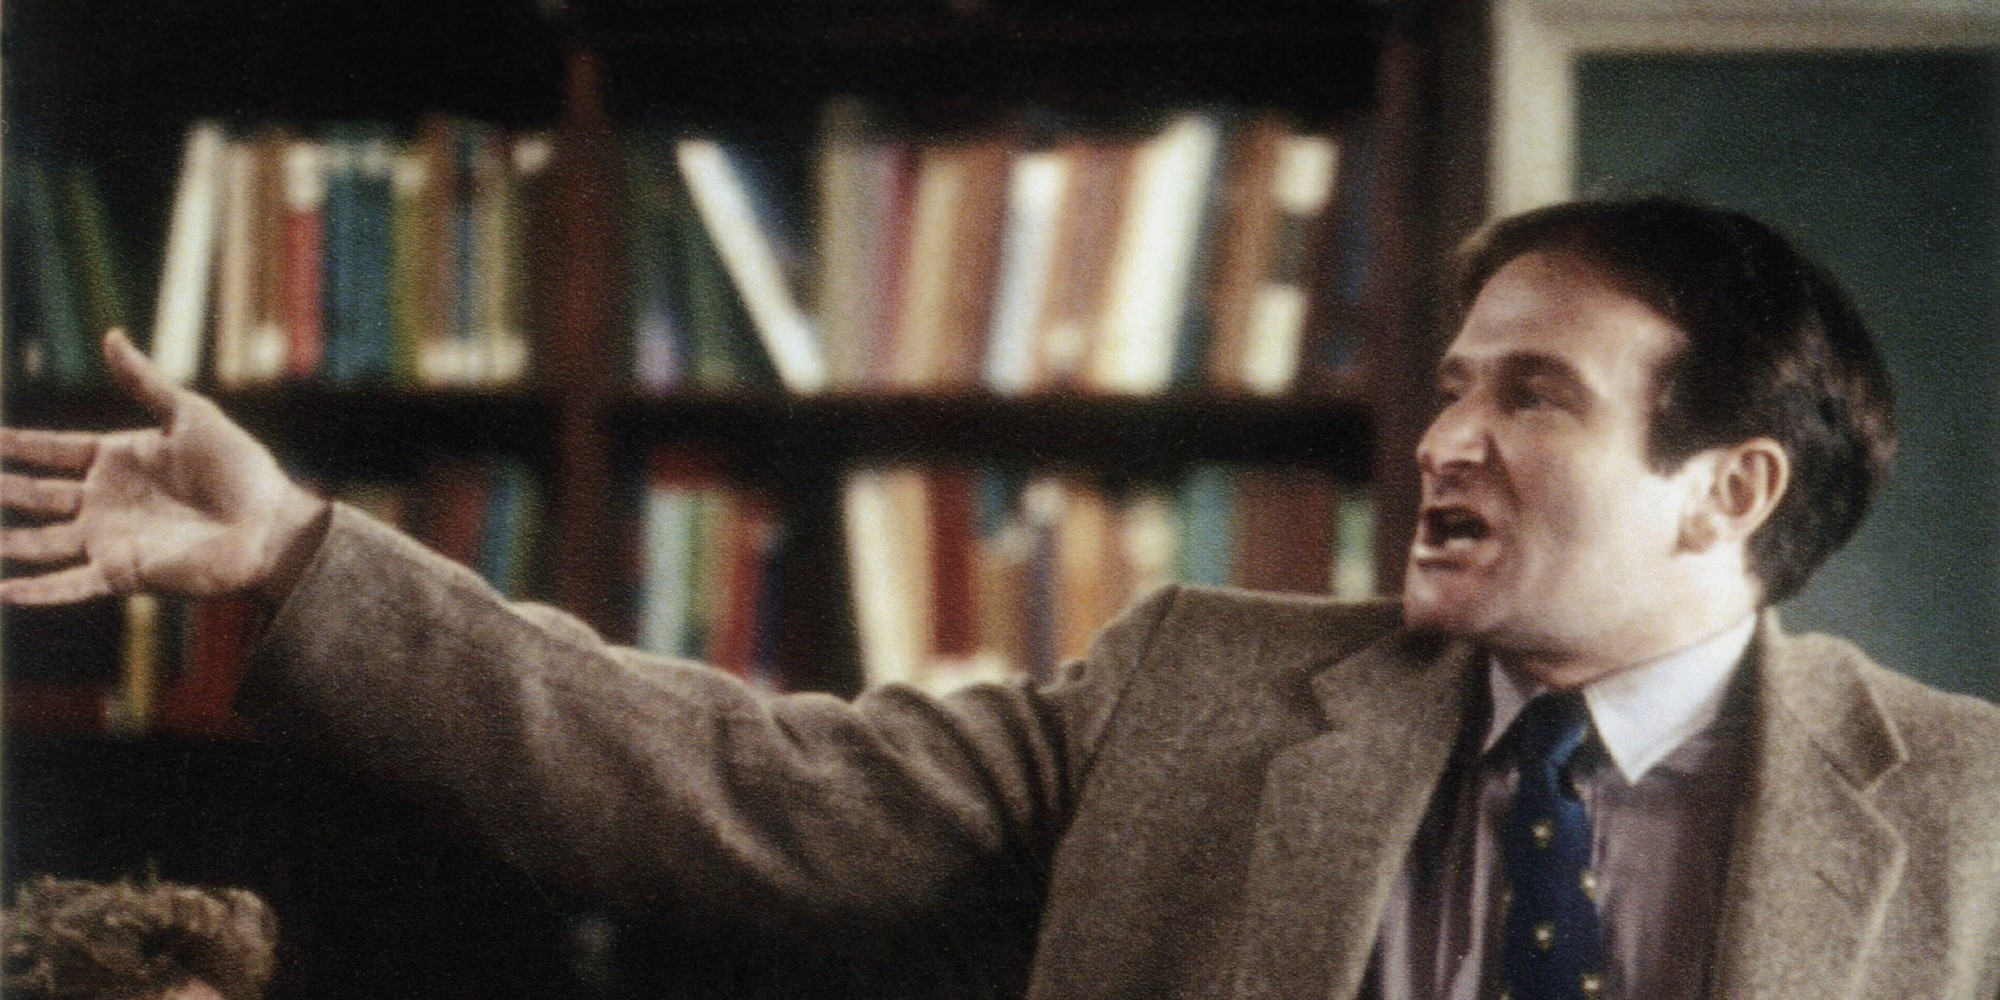 the overview of the dead poets Complete plot summary of dead poets society, written by specialists and reviewed by film experts.